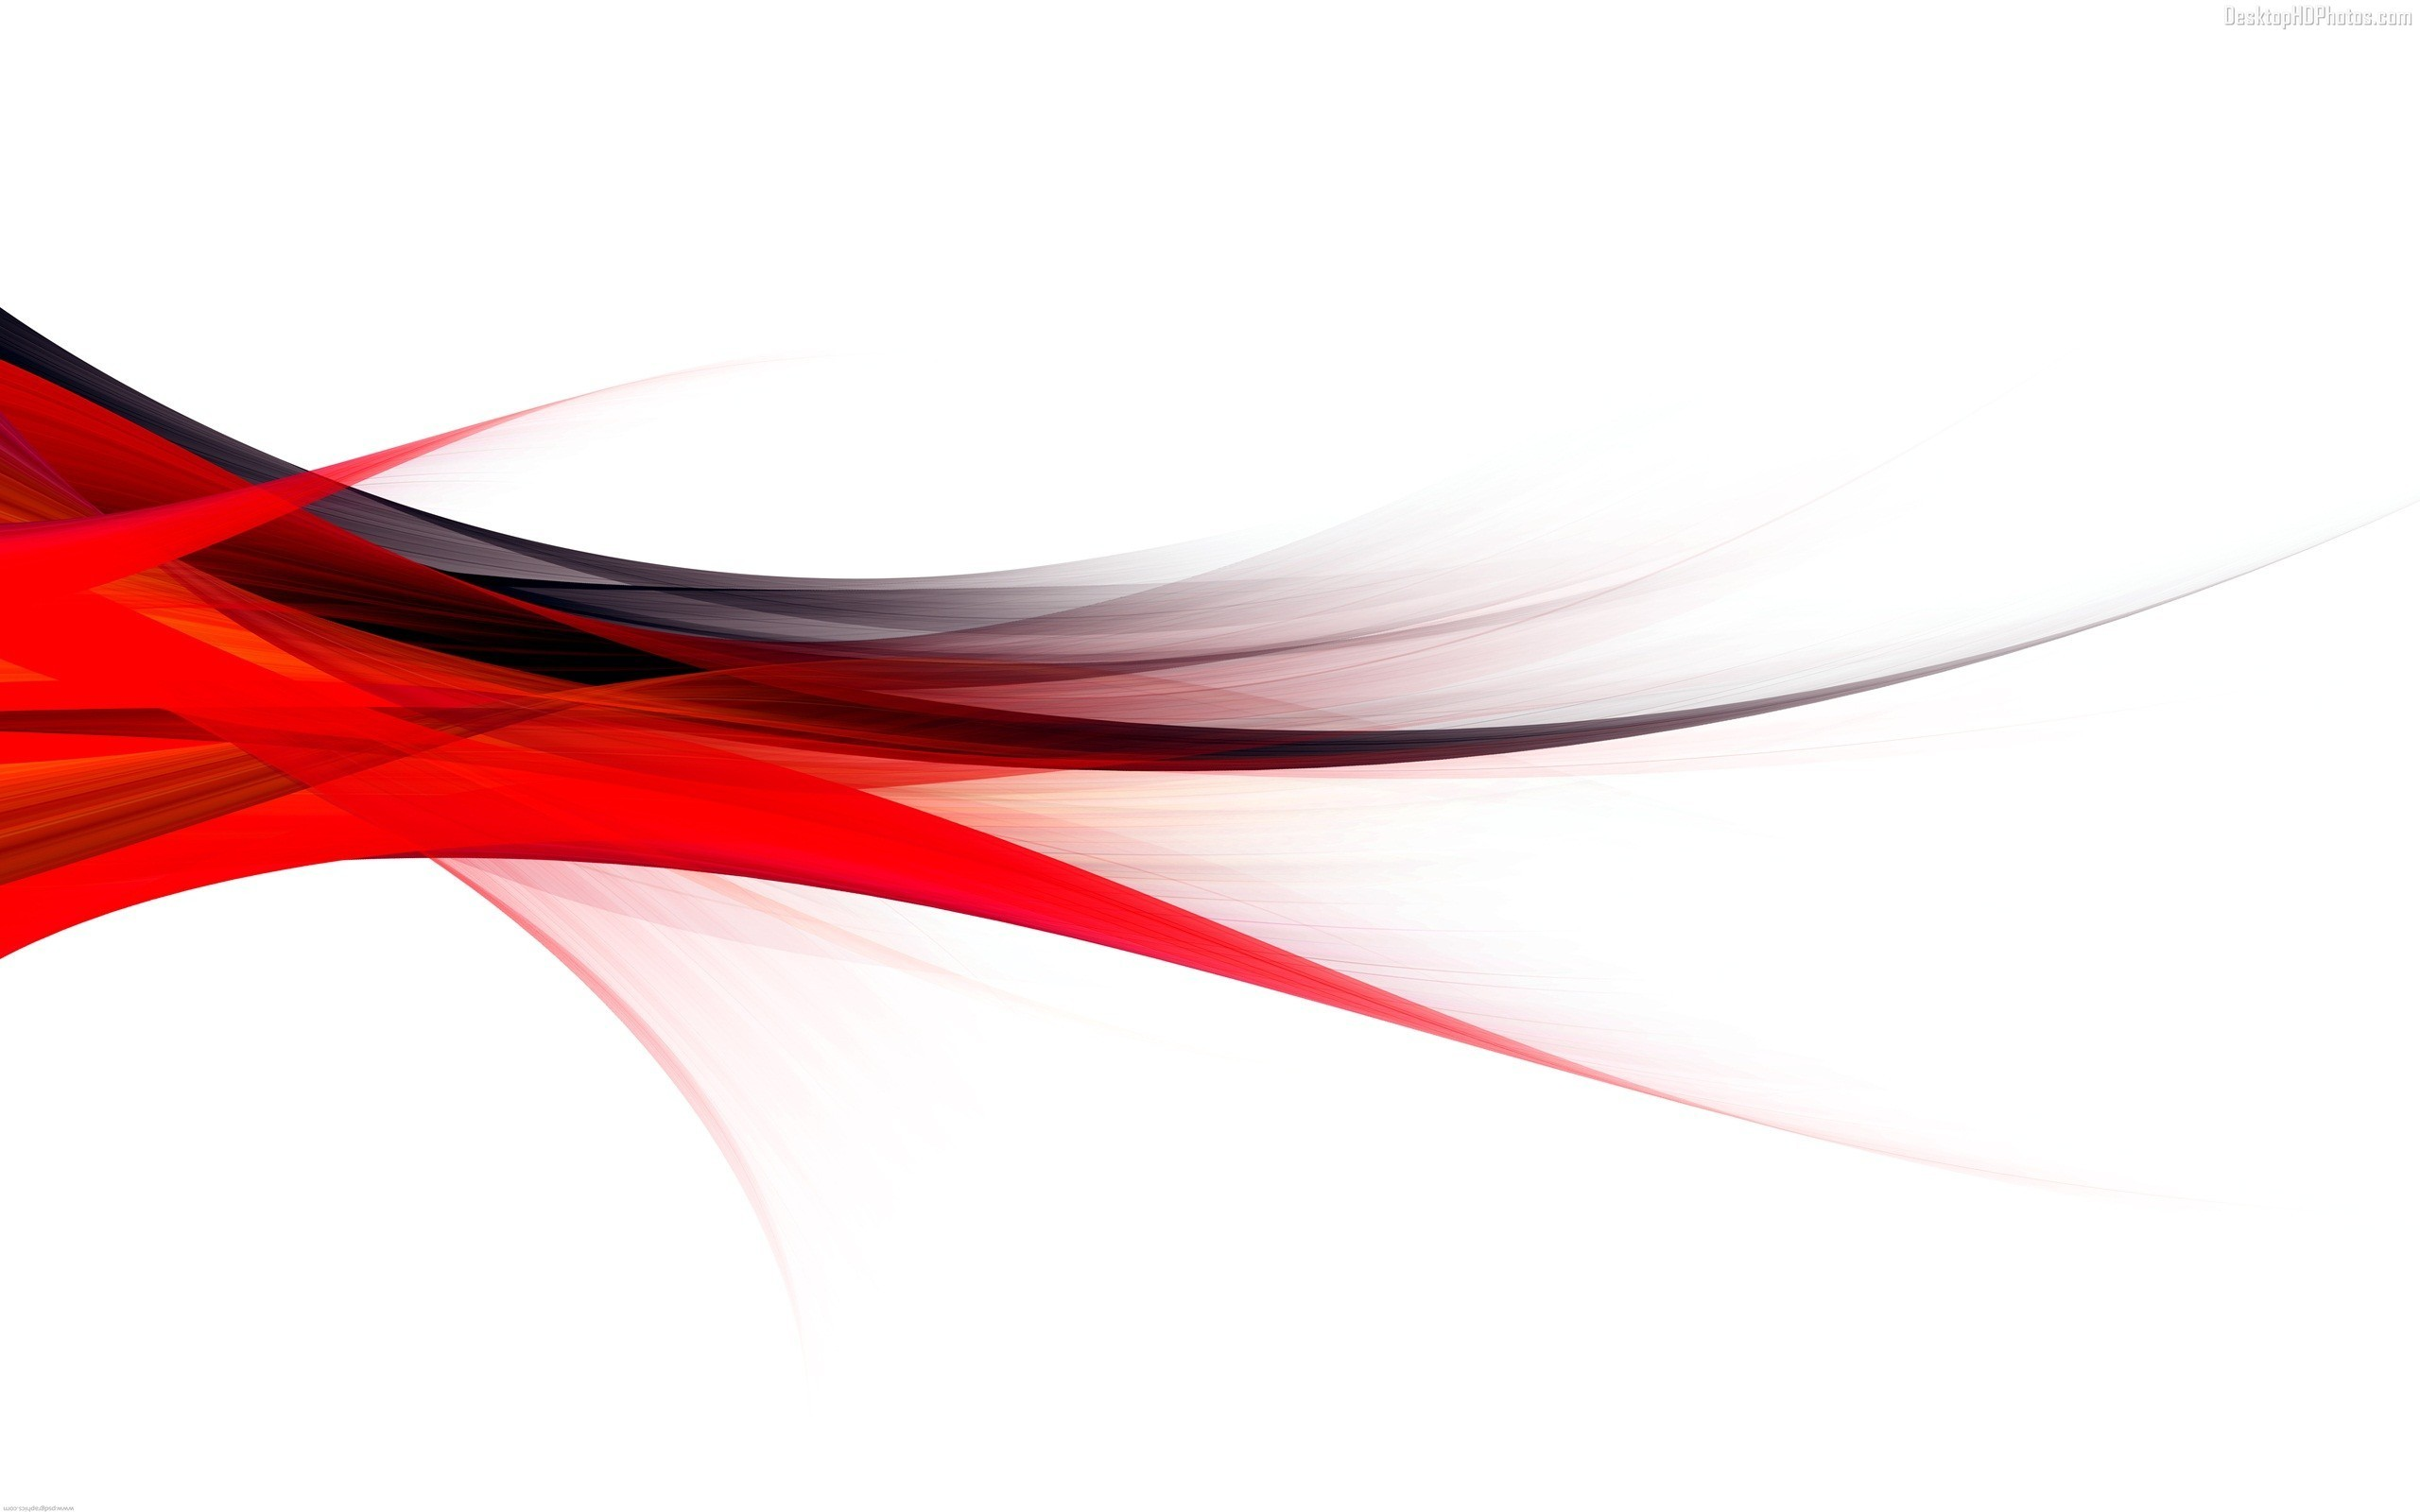 Red and white background download free beautiful high for Red and white wallpaper